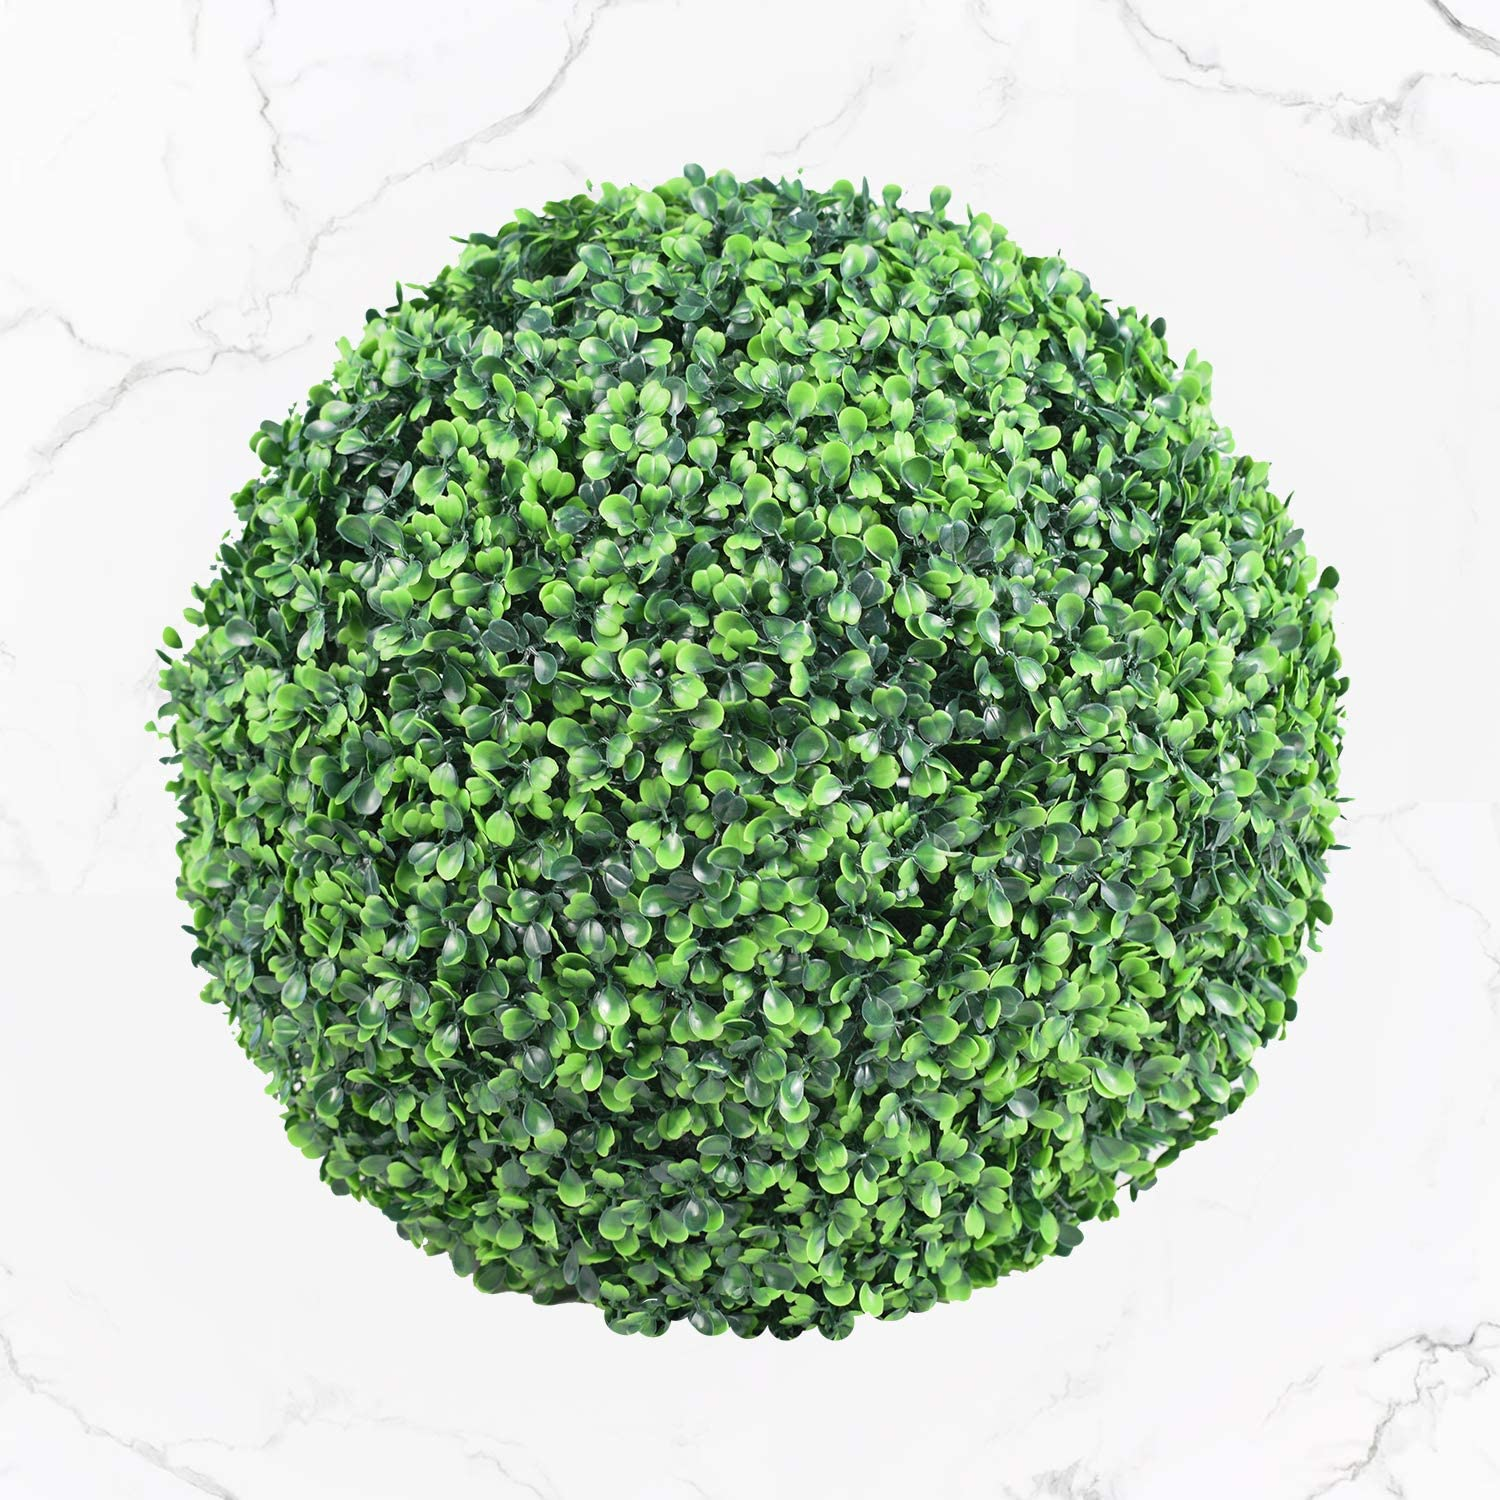 Funland 15 Inch Round Free Shipping Cheap Bargain Gift Faux Boxwood Piece Ball Max 43% OFF Art UV-Protected 1